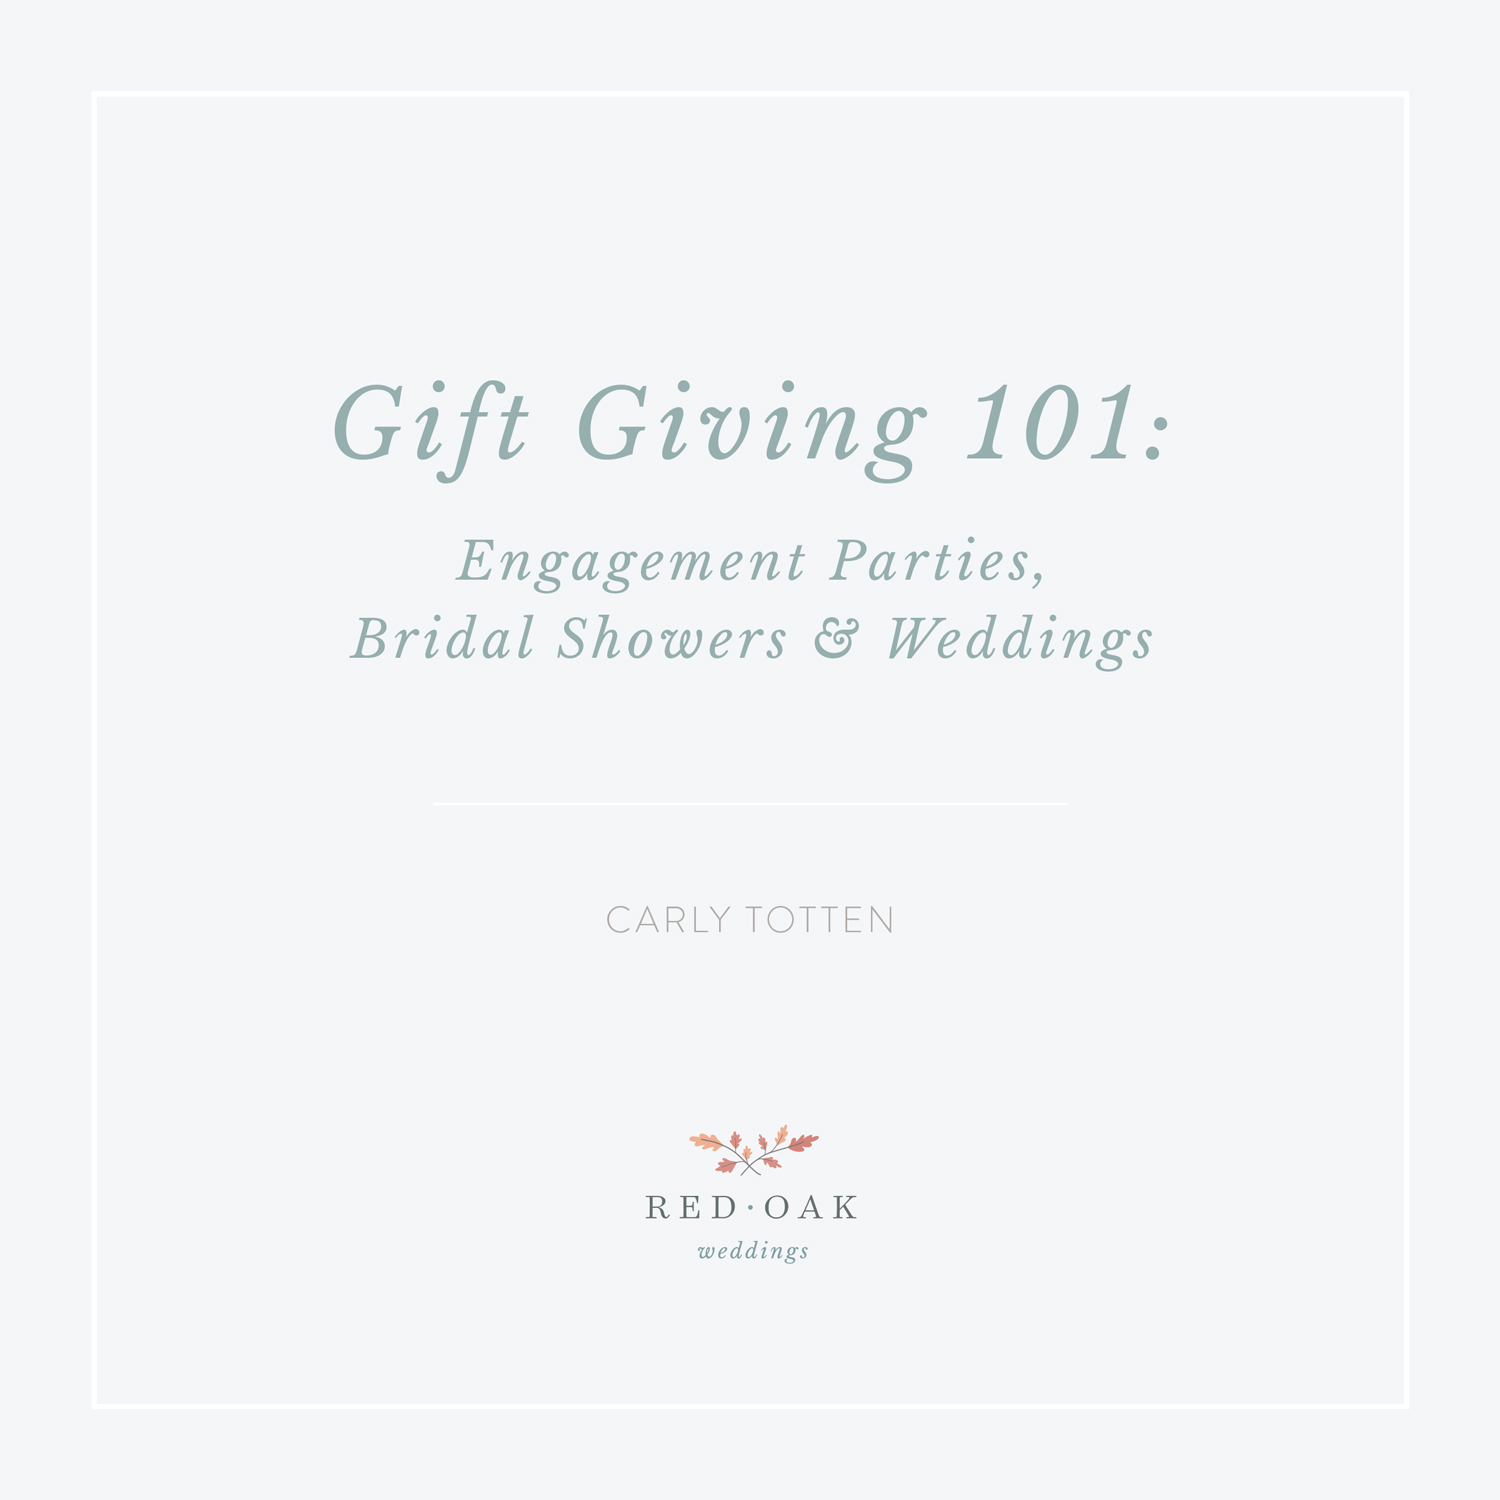 Red Oak Weddings | Gift Giving 101: How to Purchase Engagement Party, Bridal Shower and Wedding Gifts They Want • Carly Totten